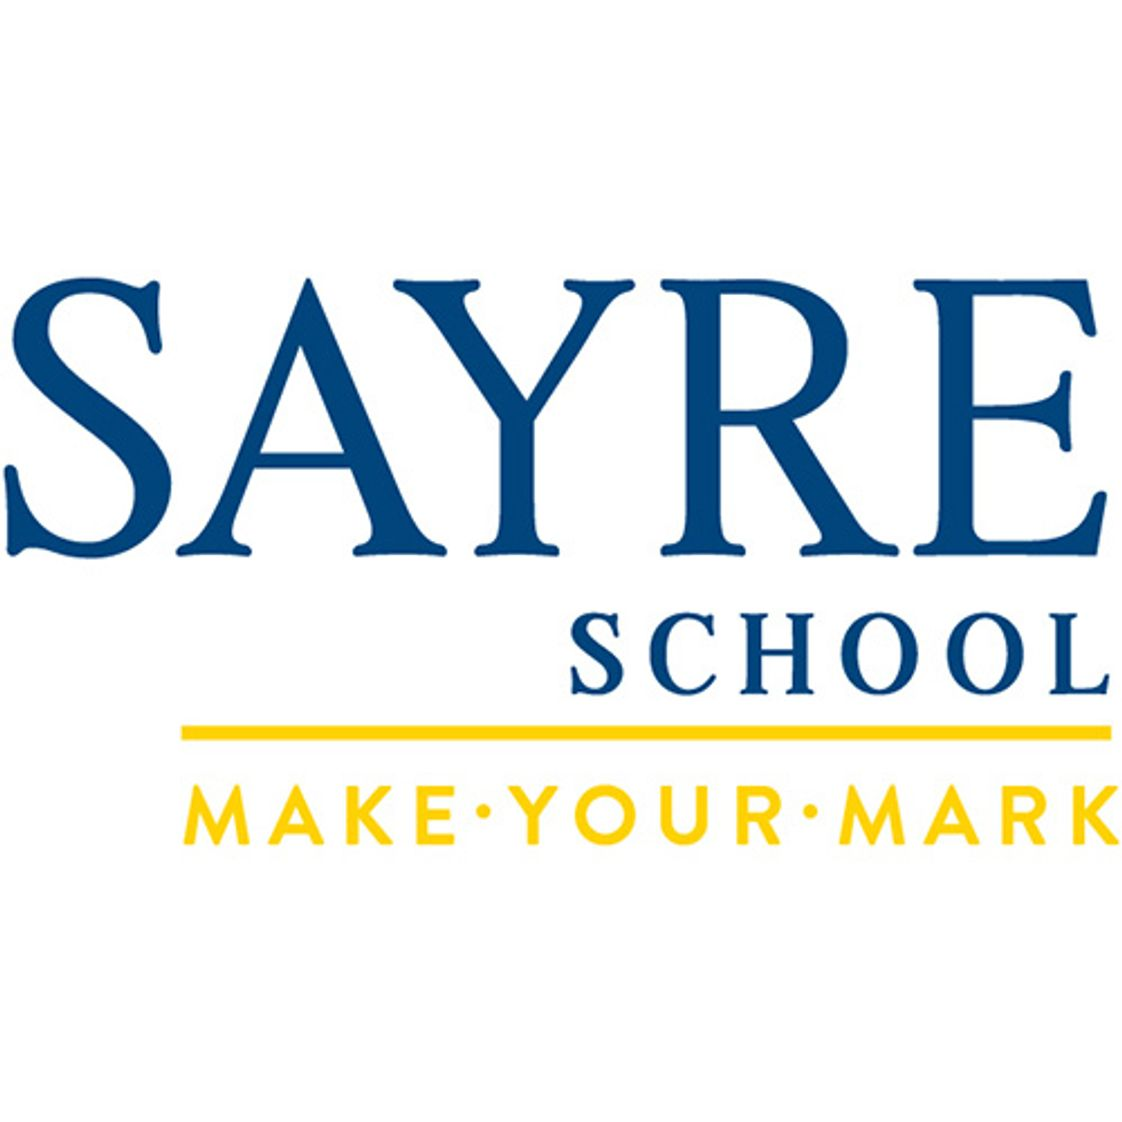 Sayre School Photo #1 - Co-ed independent day school, grades PK-12, Project-based learning through college preparatory high school.